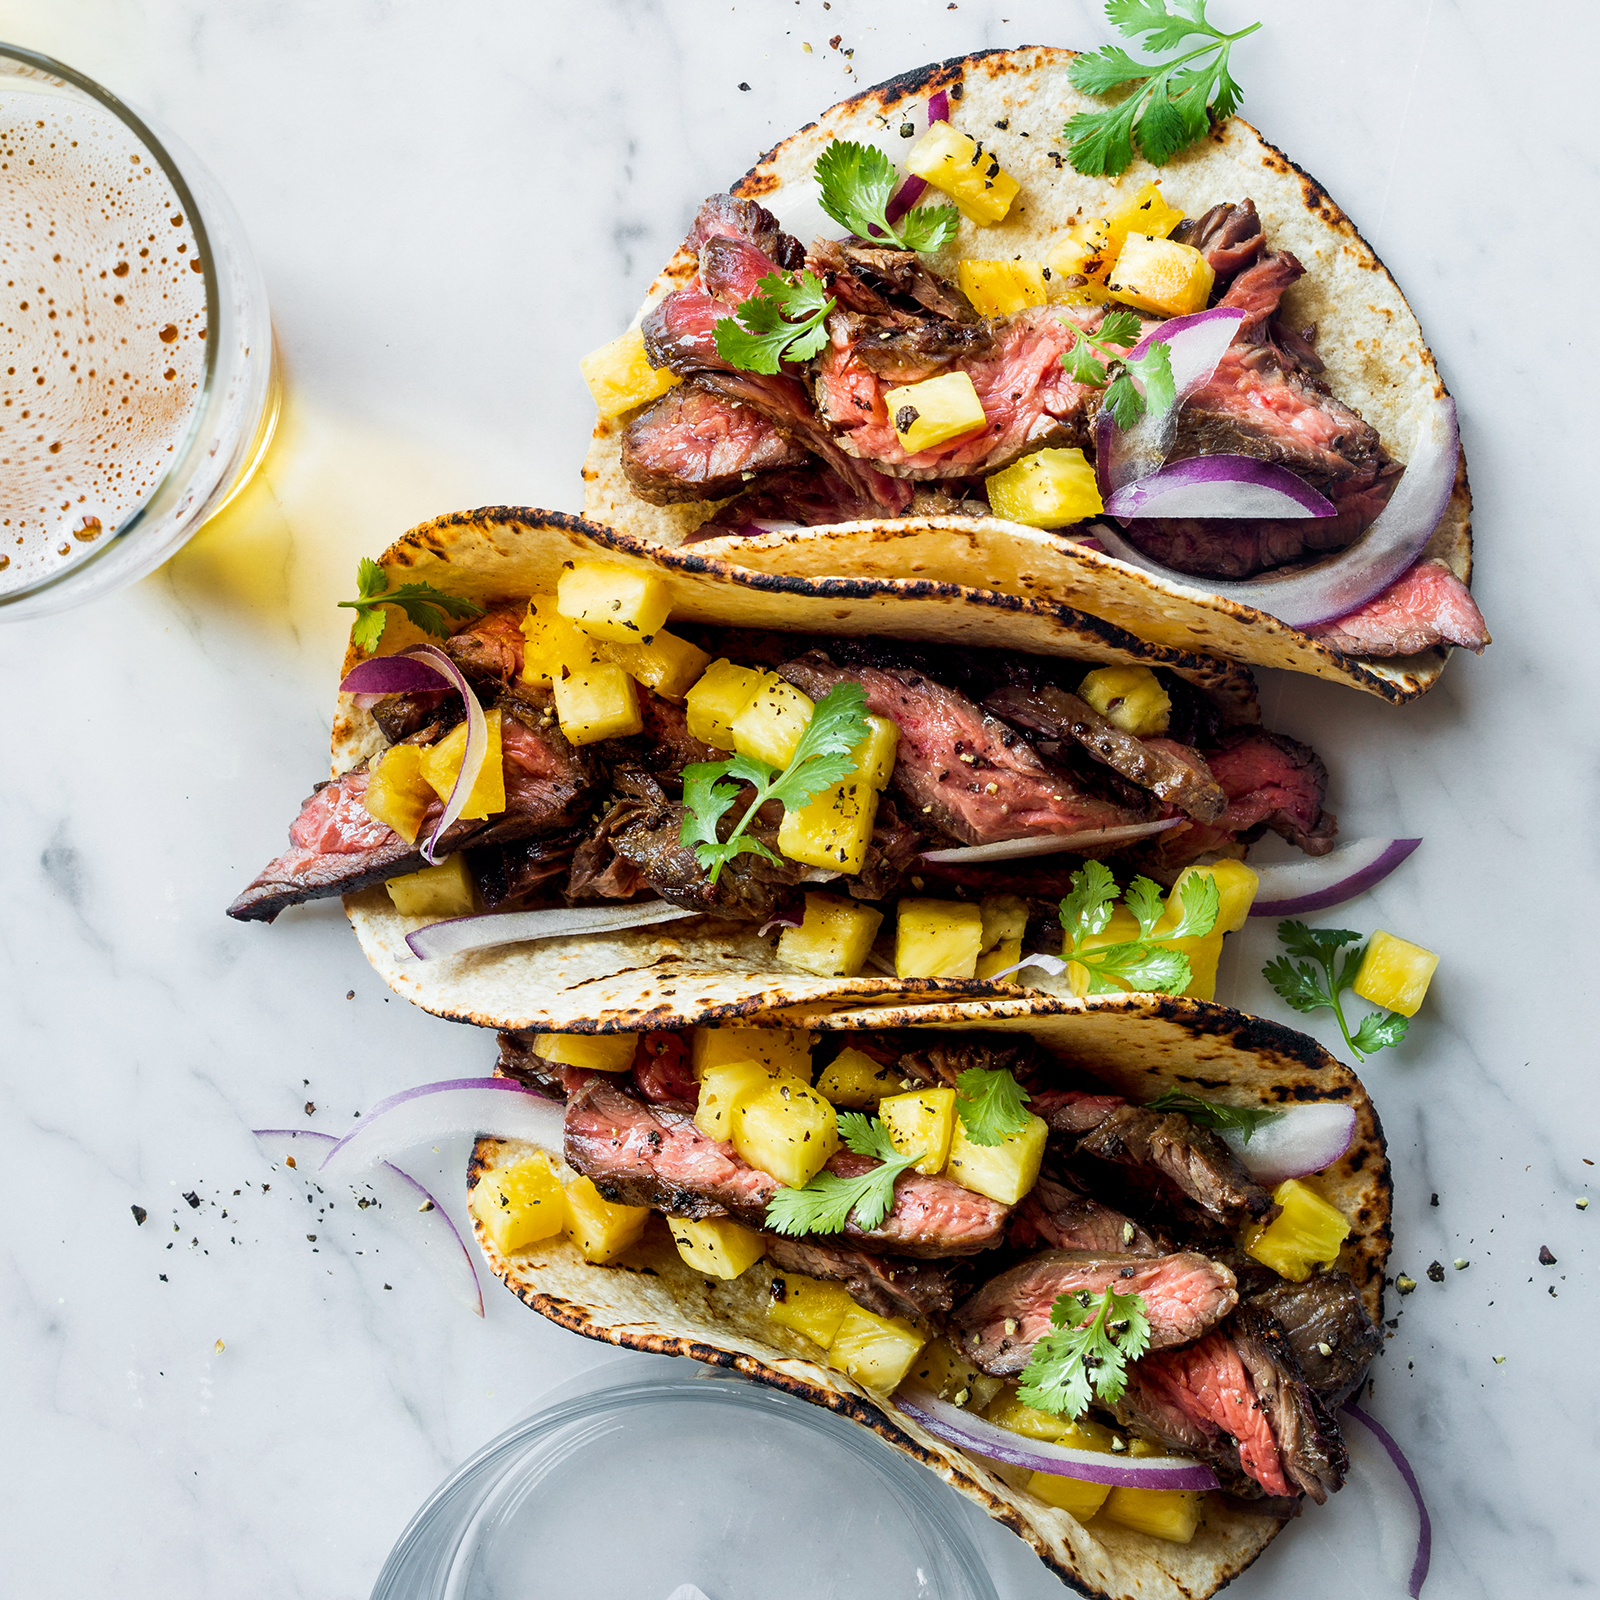 9 Tacos to Make with Labor Day Leftovers